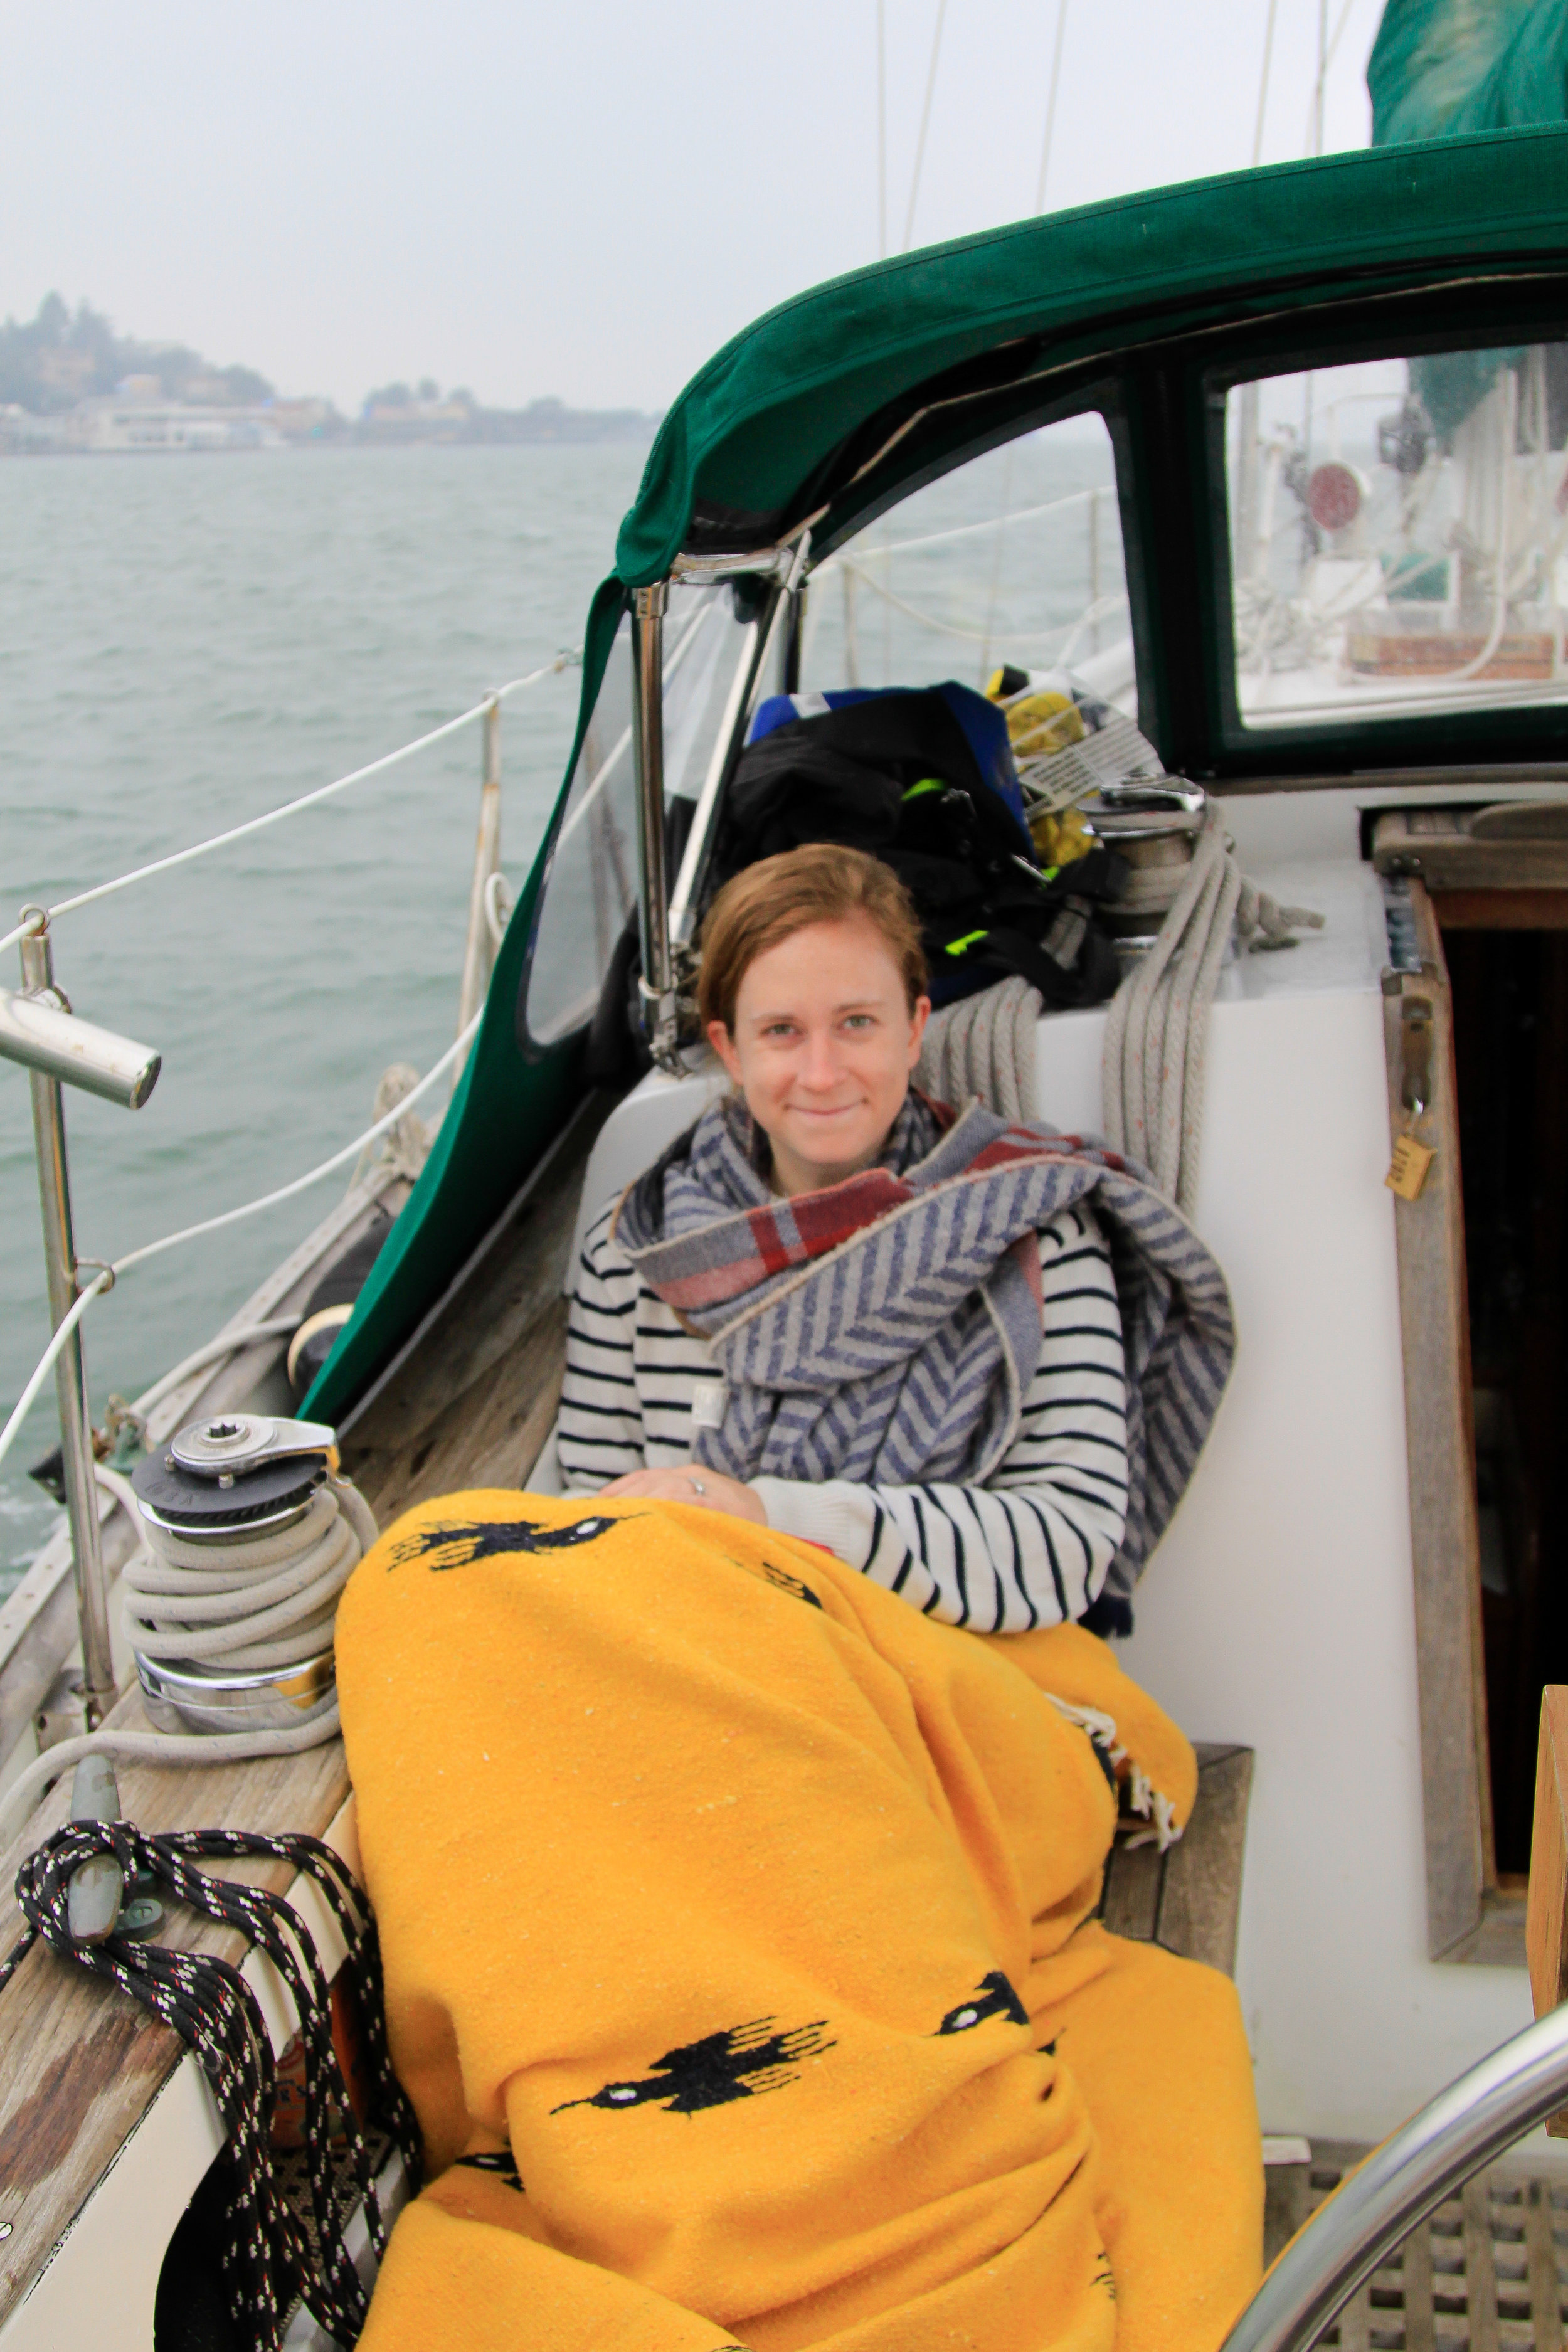 thisldu sailing blog: what it's like to live on a sailboat